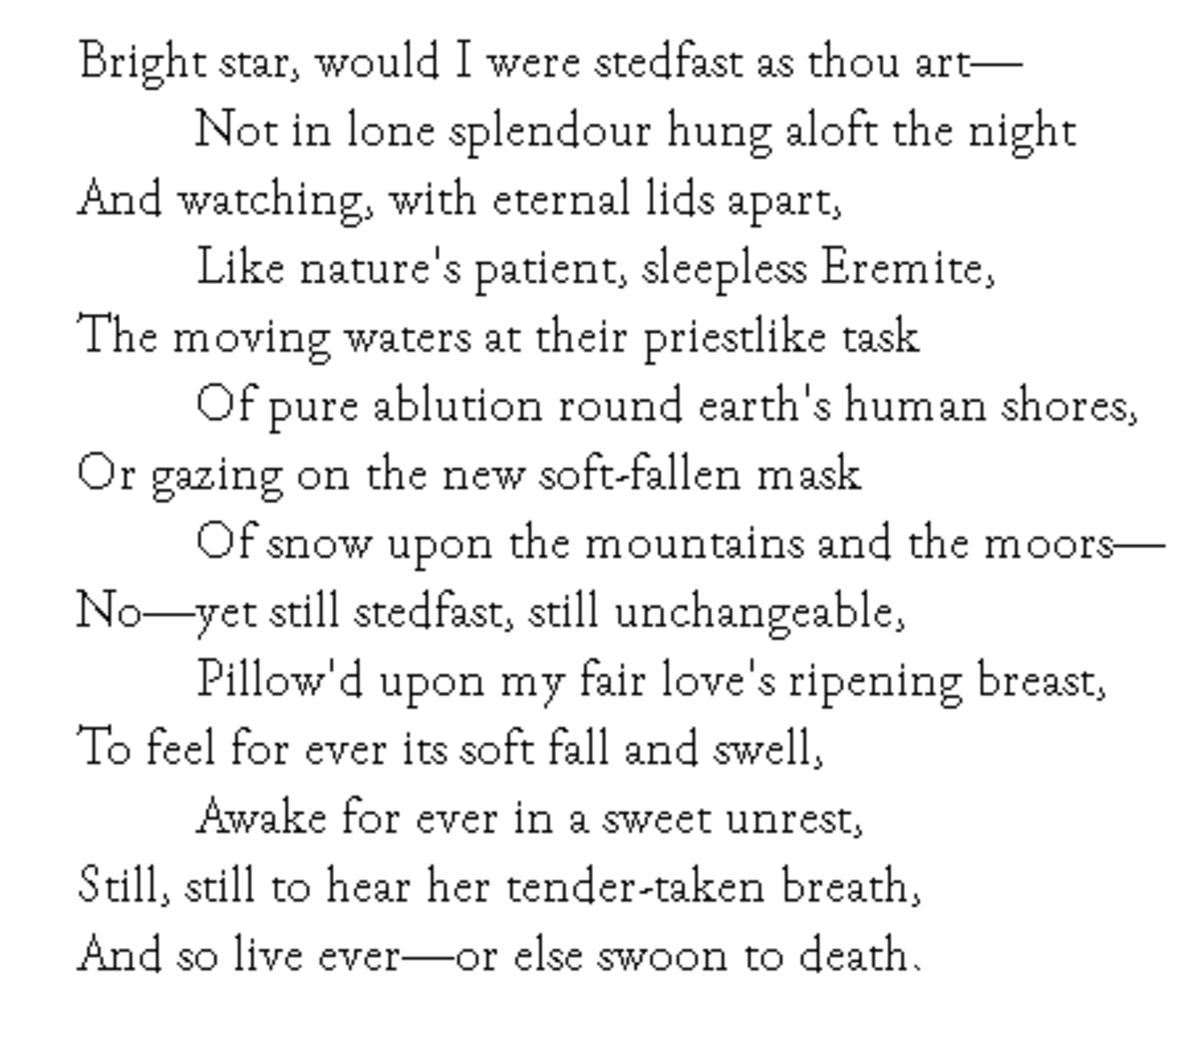 Analysis of Poem Bright Star by John Keats